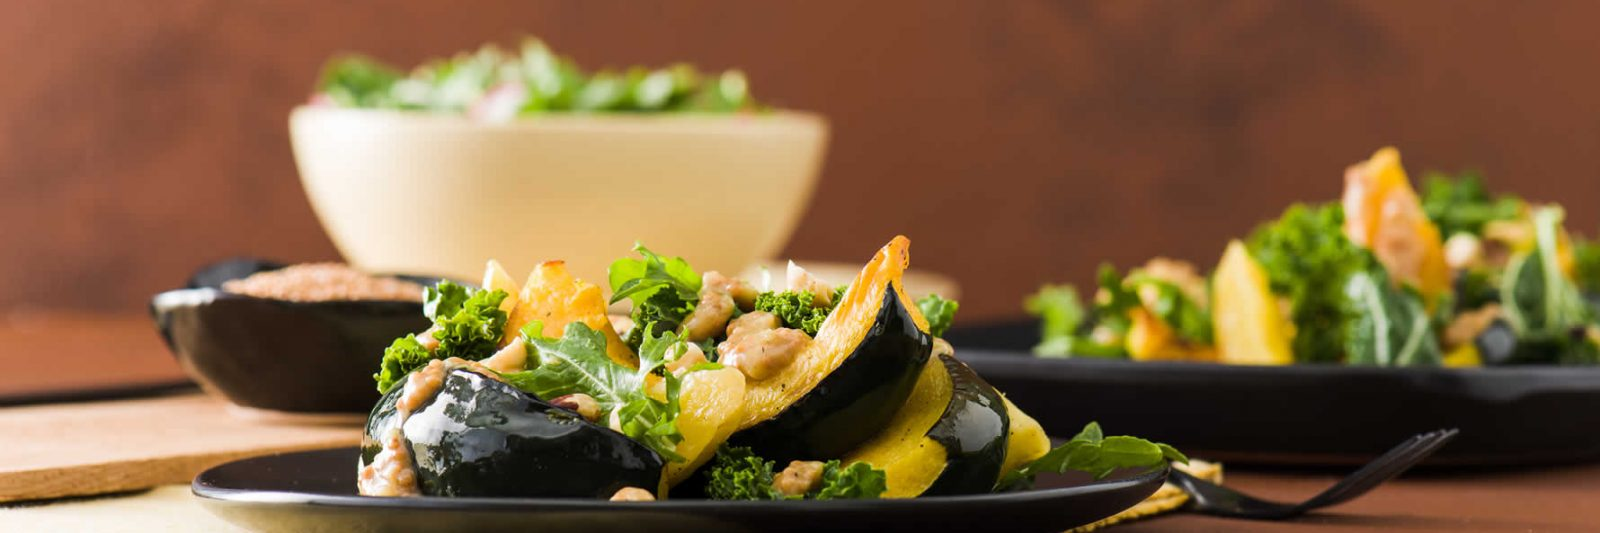 Side Dish Recipes with Mustard - Roasted Squash with Warm Mustard Vinaigrette